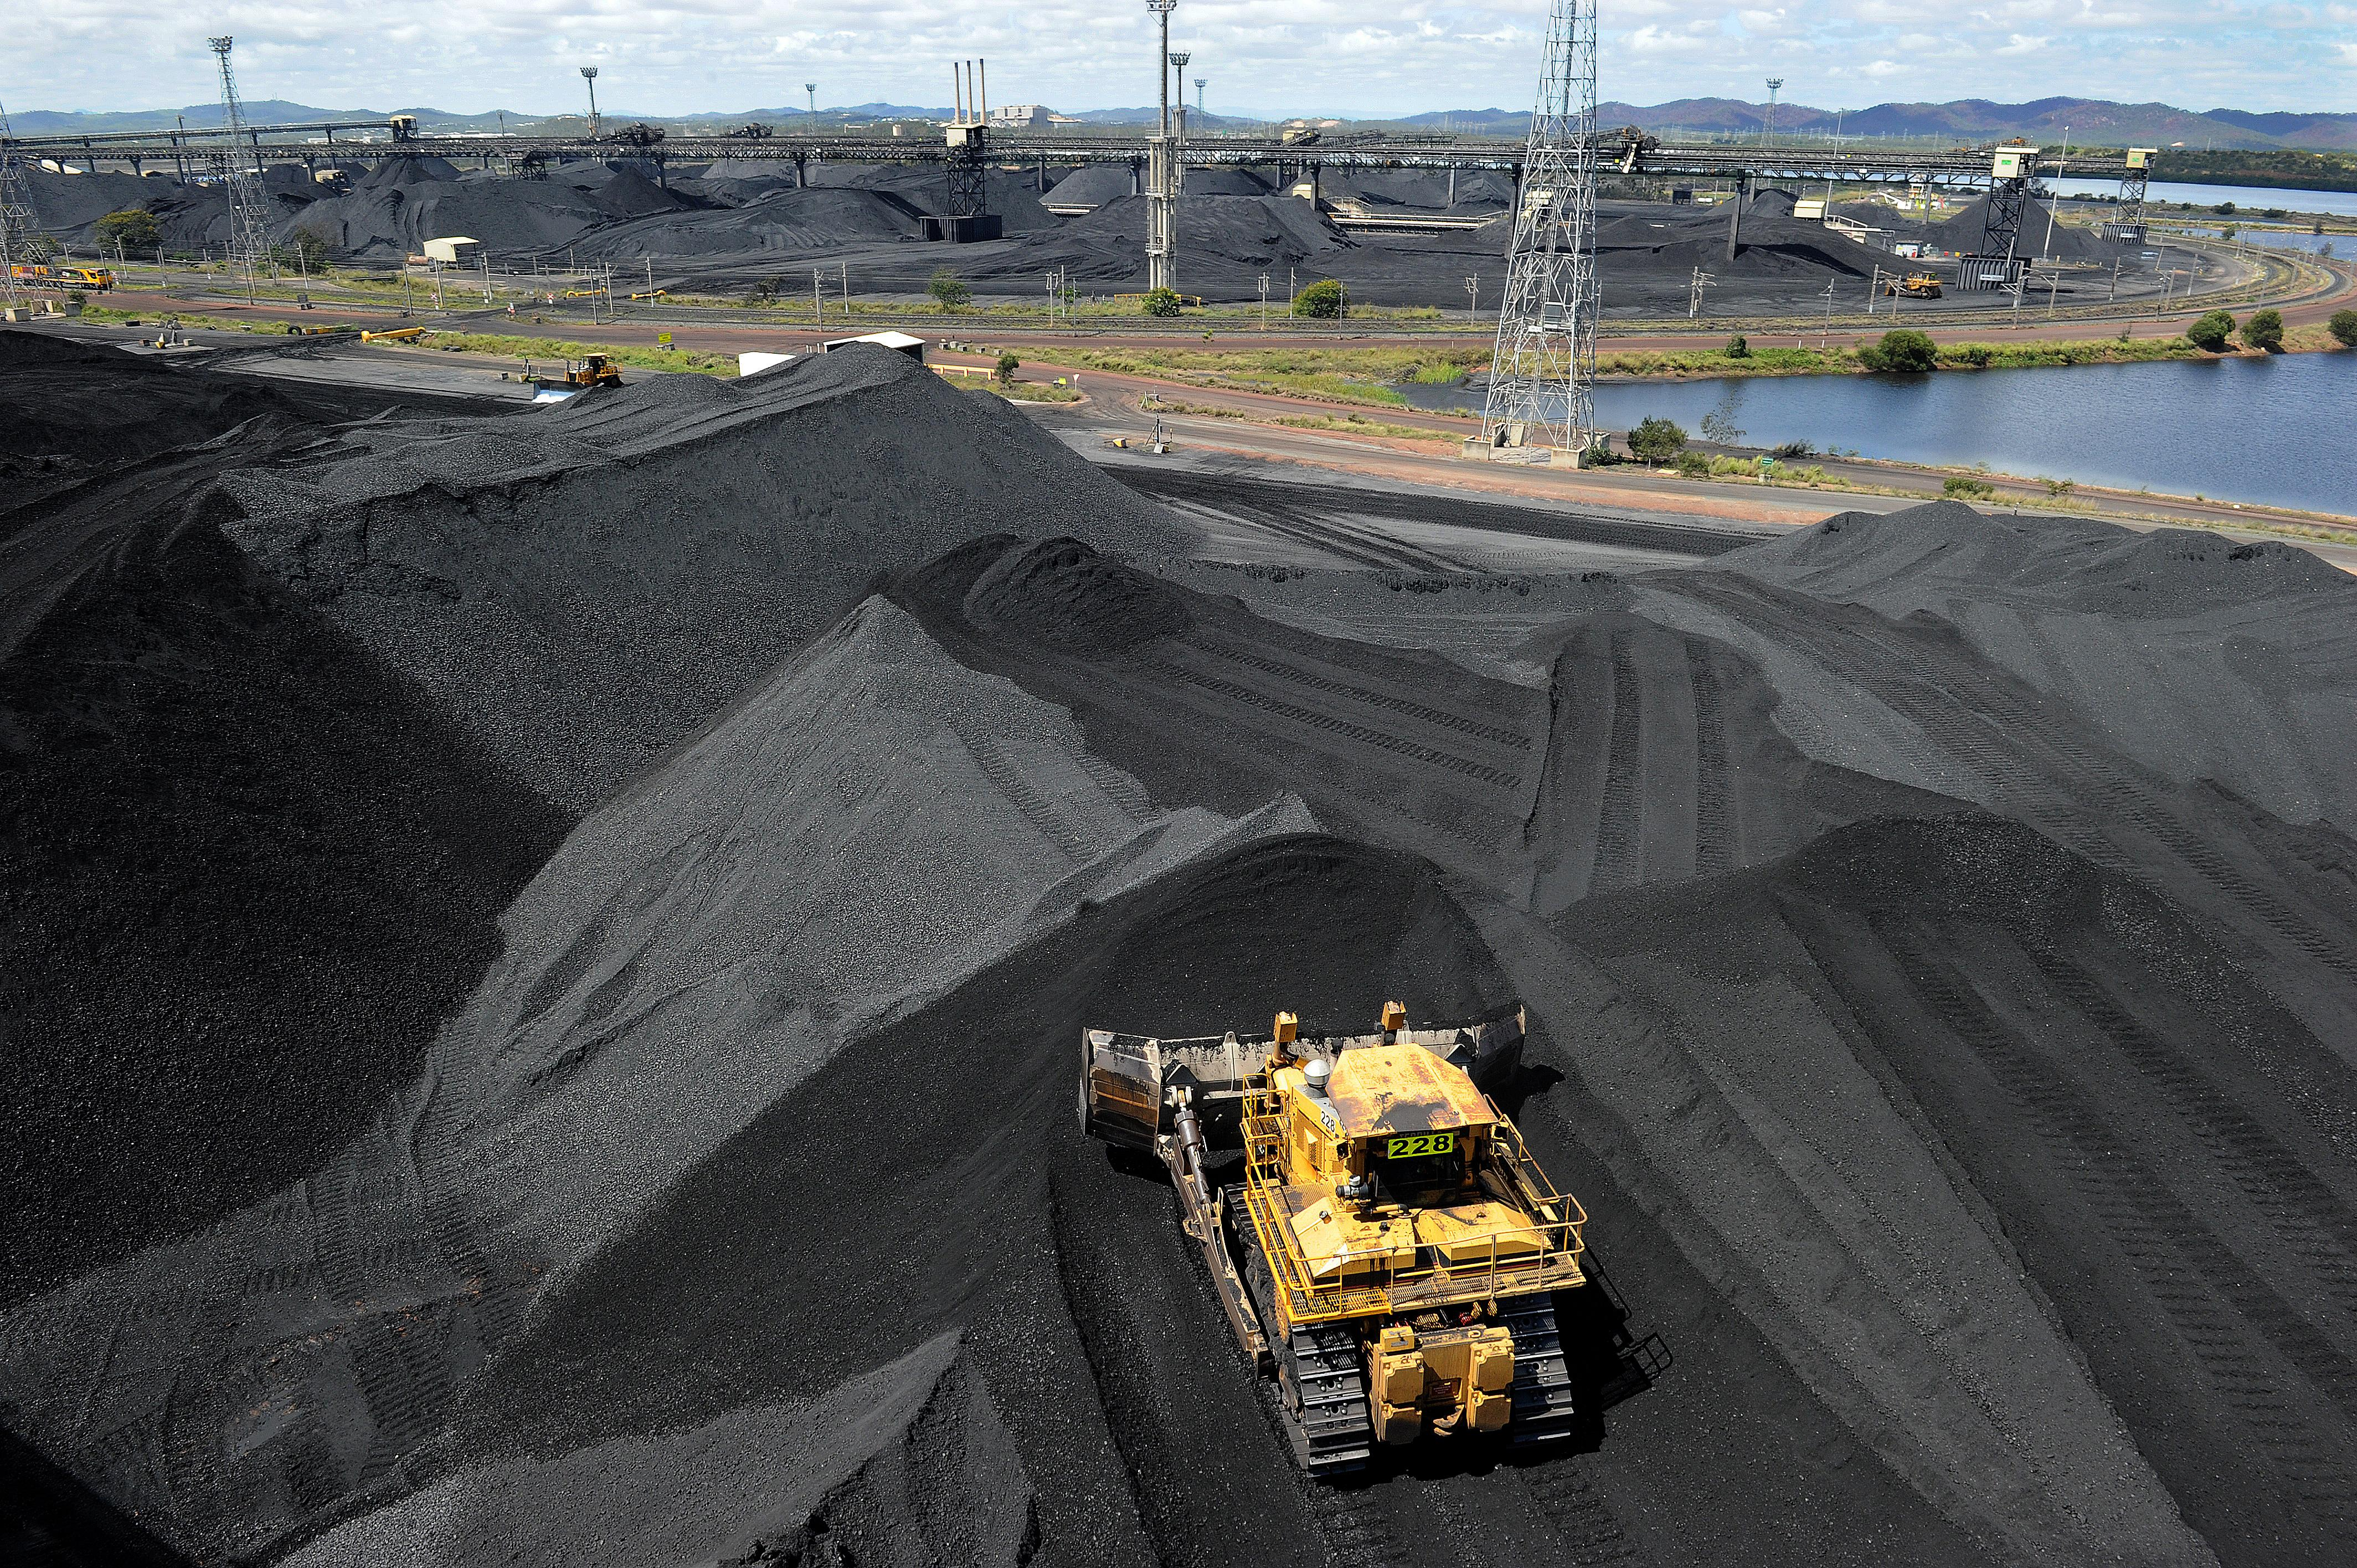 Mining firms worked to kill off climate action in Australia, says ex-PM